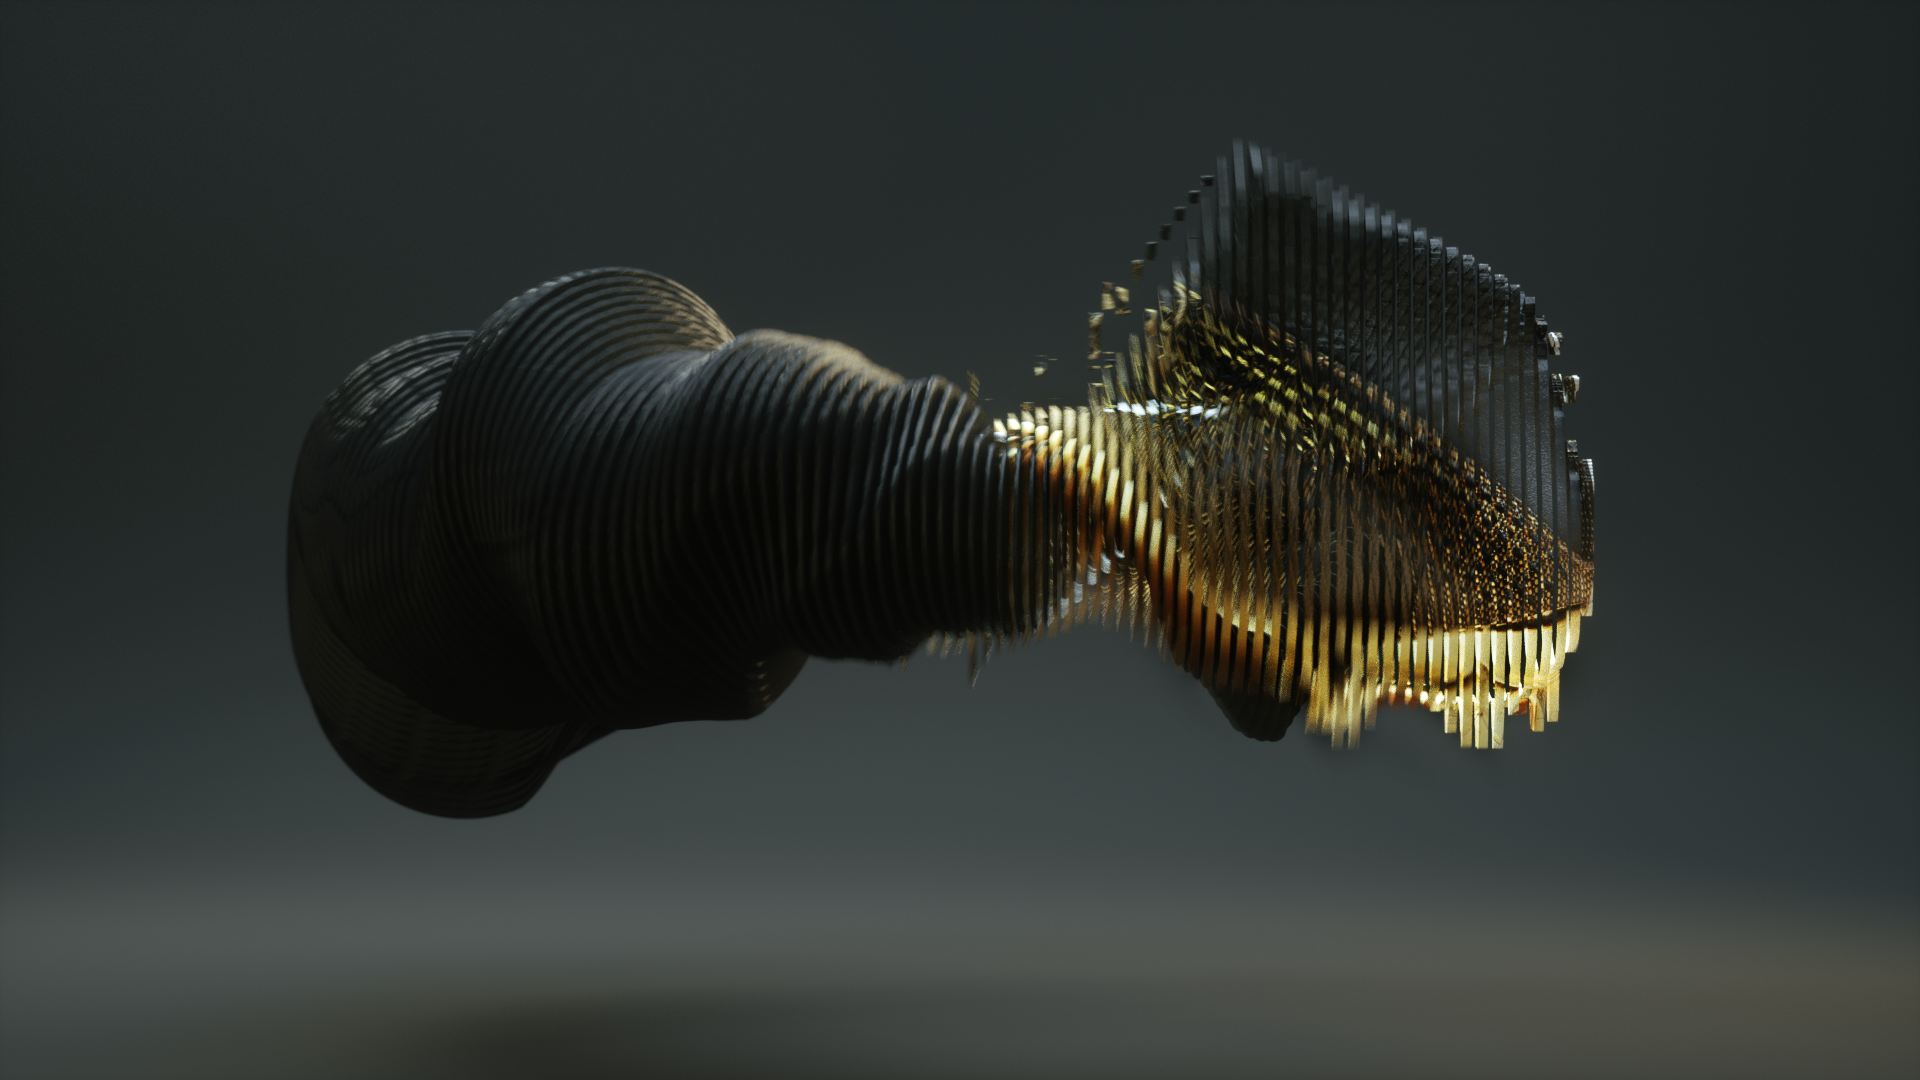 abstract-morphform-04-slicedshoe3-2.png